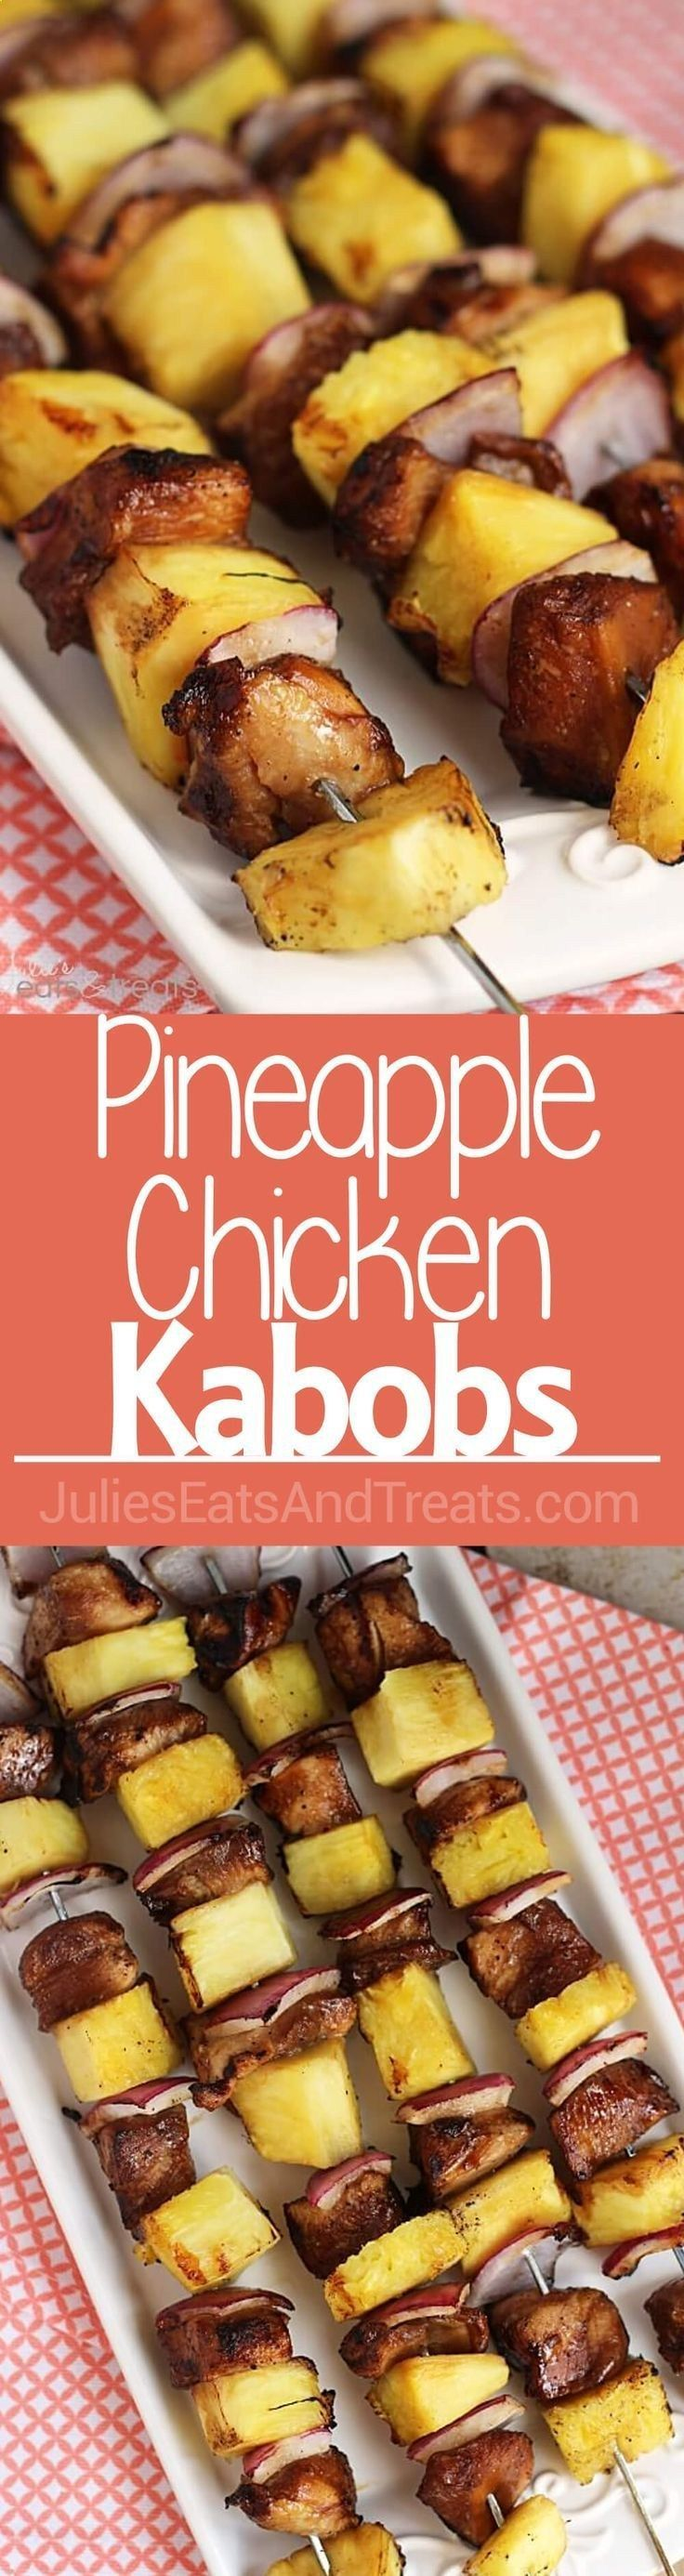 Pineapple Chicken Kabobs ~ Quick and Easy Marinated Kabobs that are the Perfect Combination of Sweet and Tangy! ~… whole30 grilling recipes;grilling recipes dinner;grilling dishes;grilling recipes healthy;grilling recipes veggies;recipes for grilling;grilling tip;grilling healthy;grilling recipes easy;grilling onions;grilling recipes chicken;grilling recipes meat;grilling recipes sides;healthy grilling recipes;meat grilling recipes;healthy grilling;grilling chicken breastrecipes;grilli... #chi #chickenbreastrecipeseasy